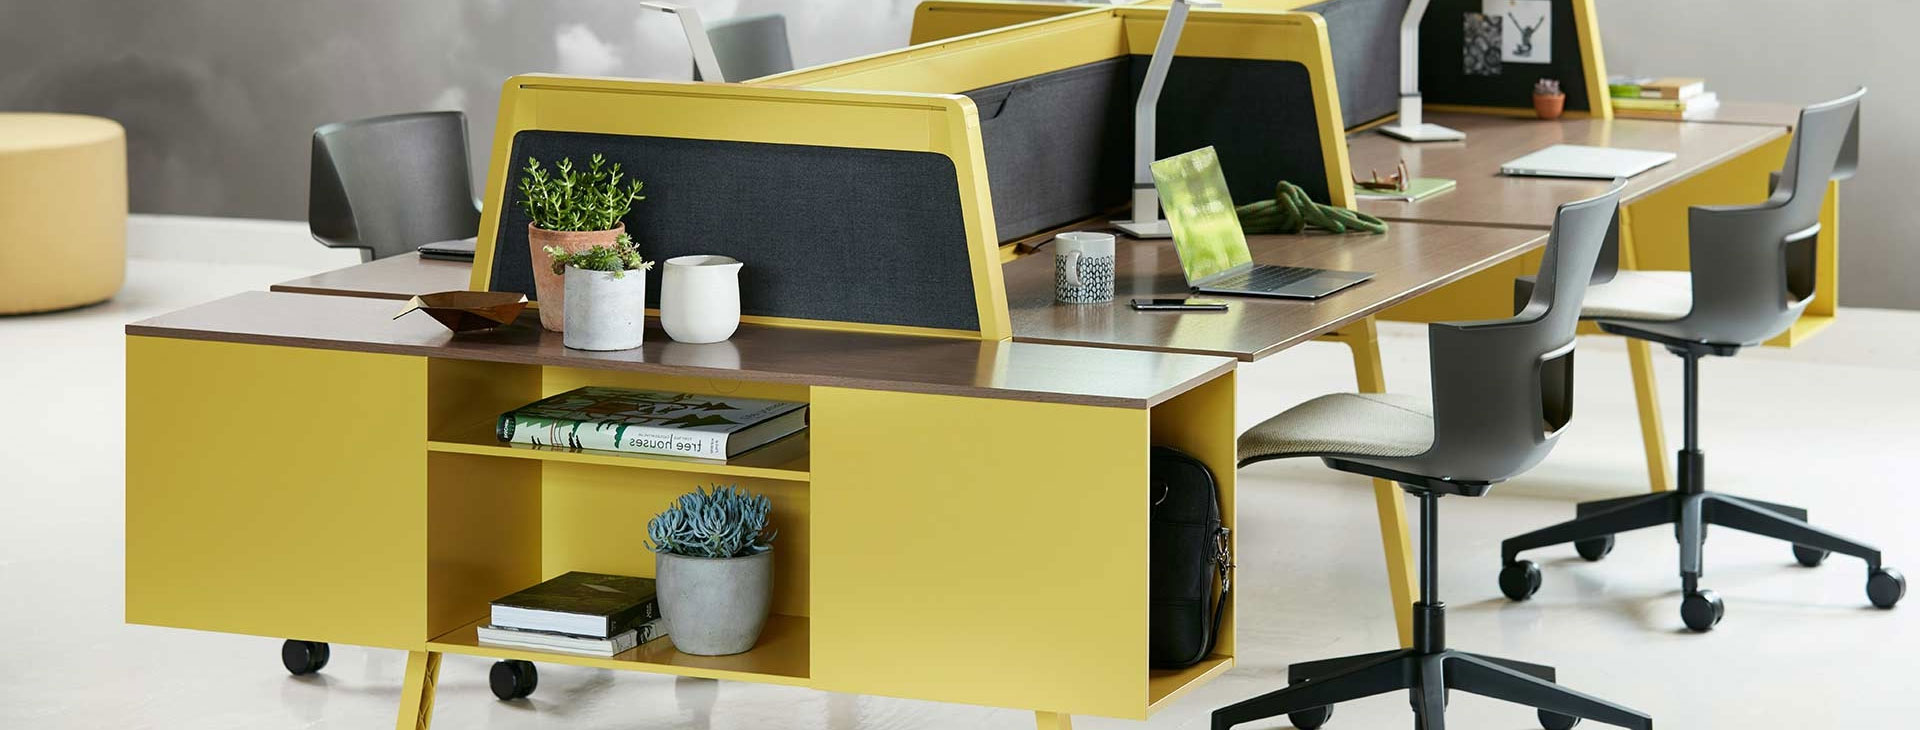 Modular Office Furniture Manufacturers in Ambala